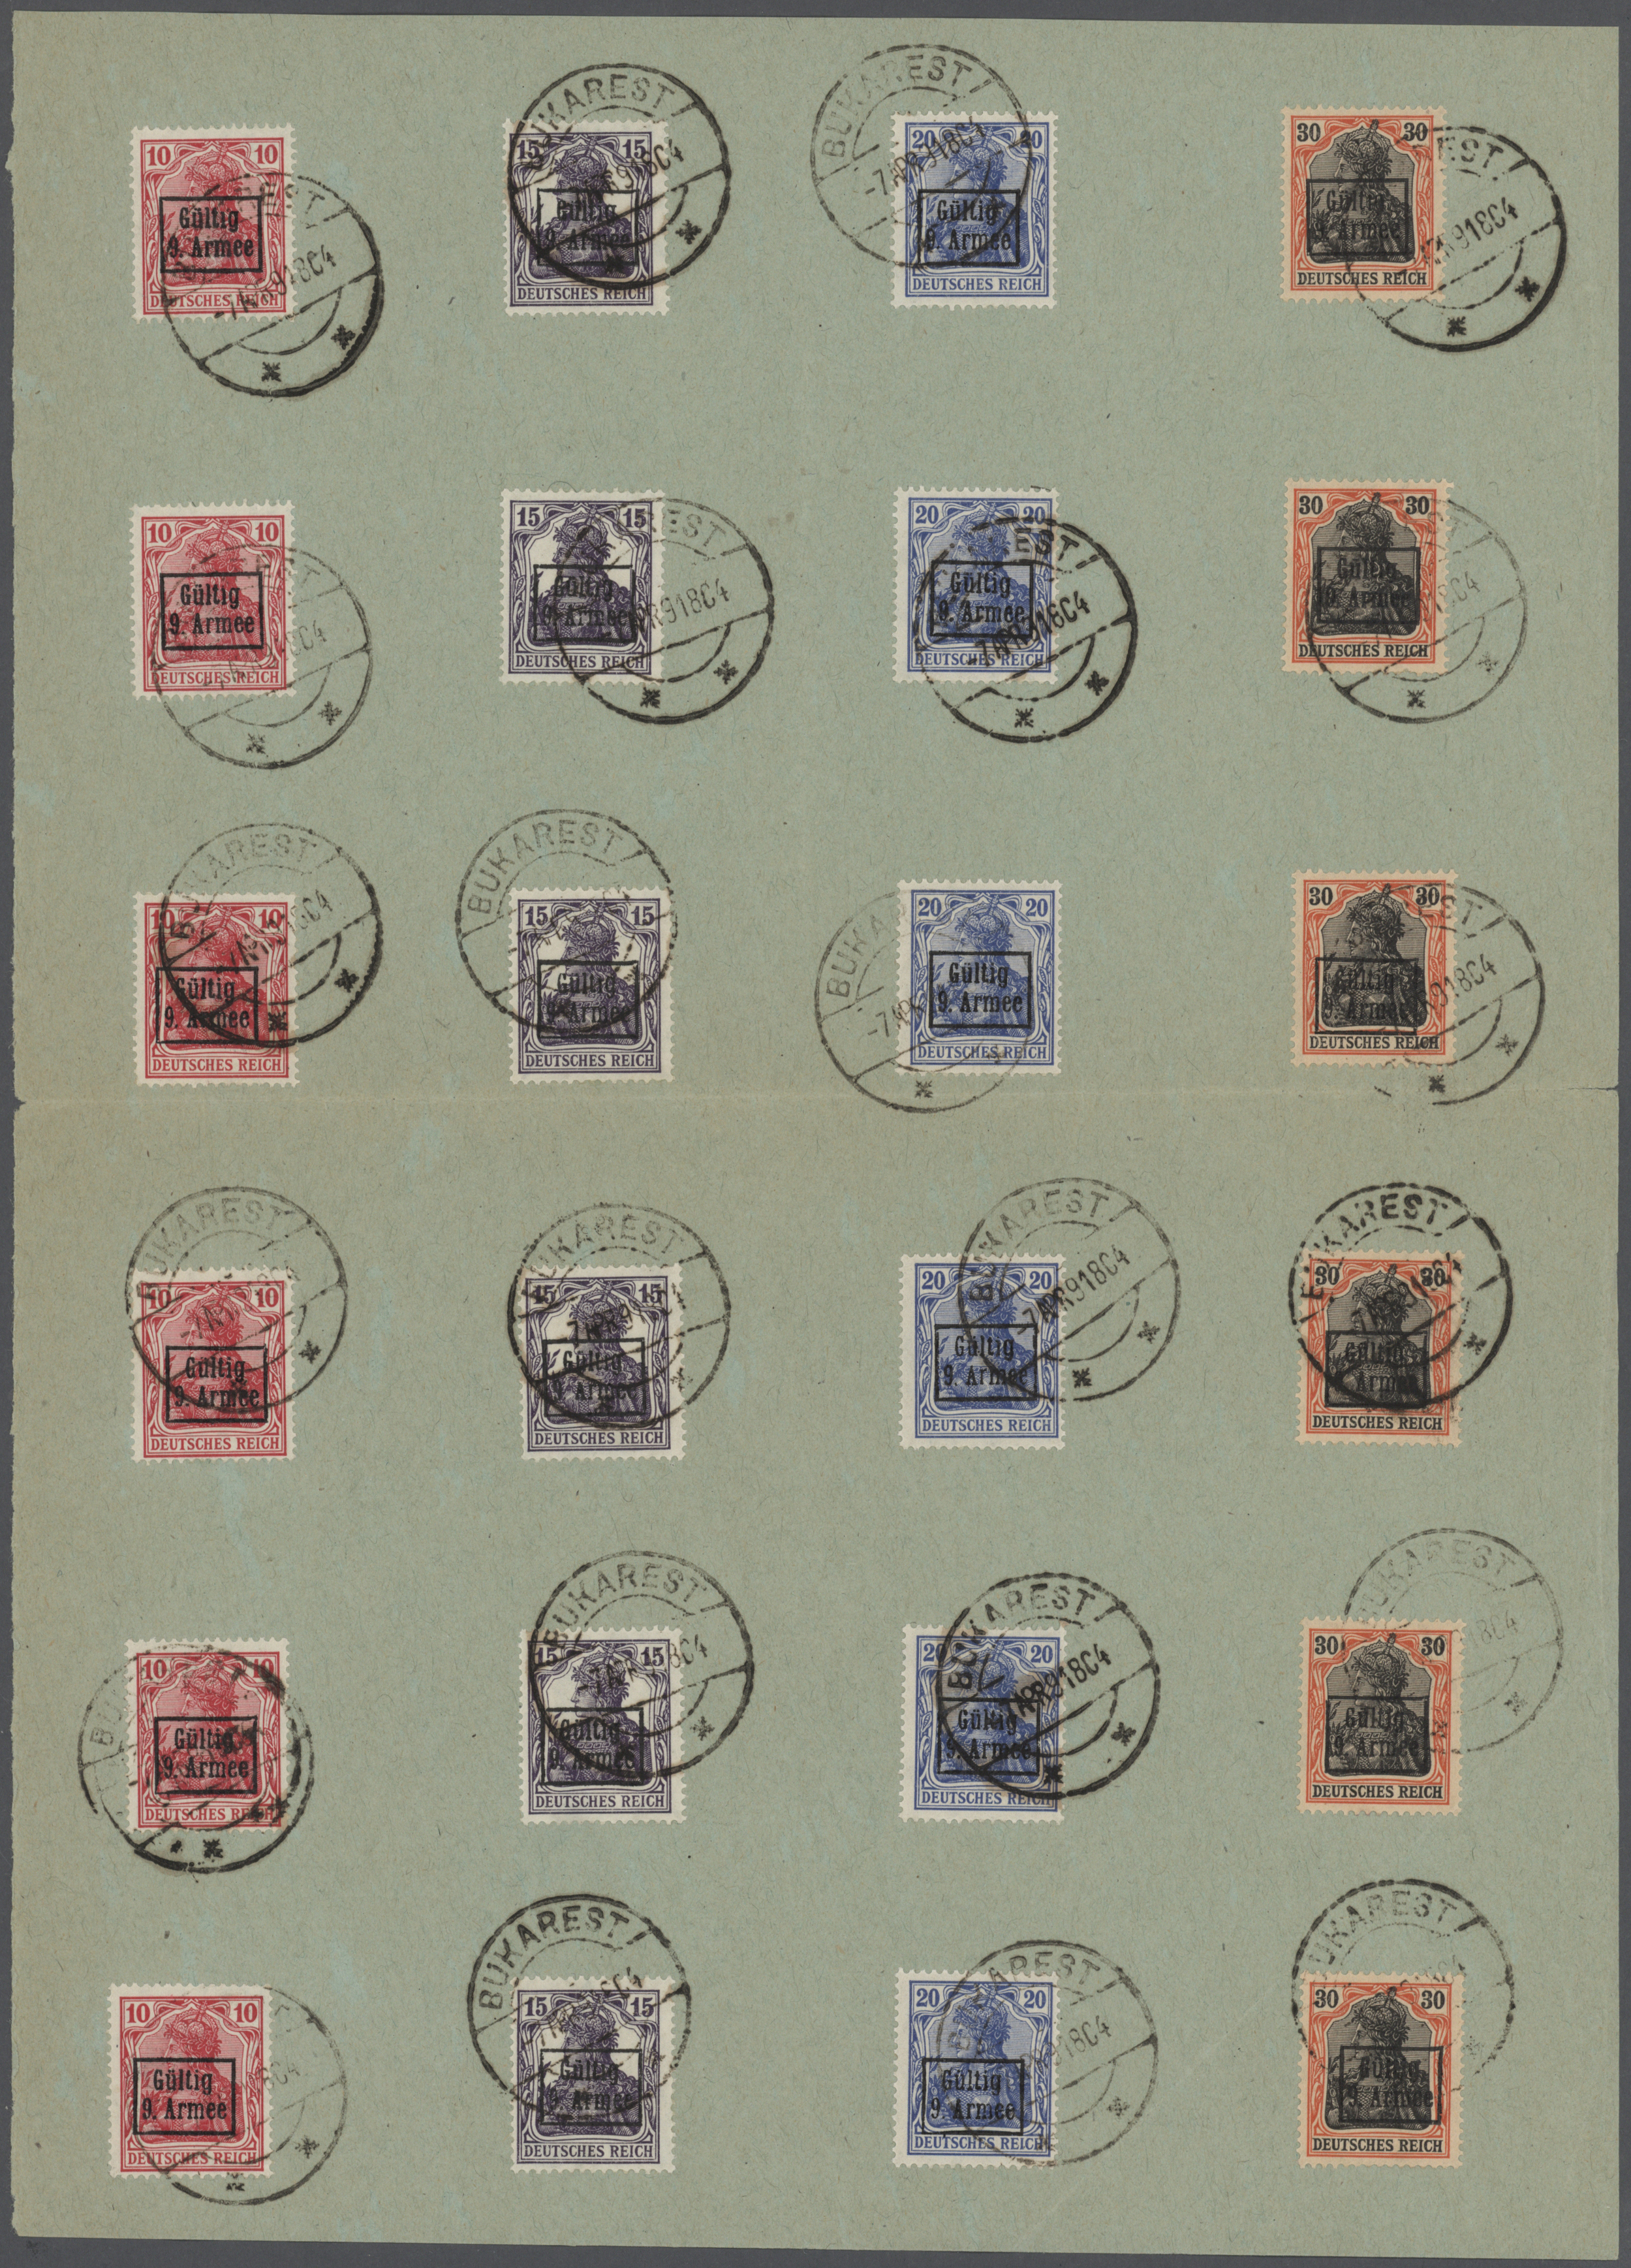 Lot 37312 - deutsche besetzung i. wk  -  Auktionshaus Christoph Gärtner GmbH & Co. KG Collections Germany,  Collections Supplement, Surprise boxes #39 Day 7